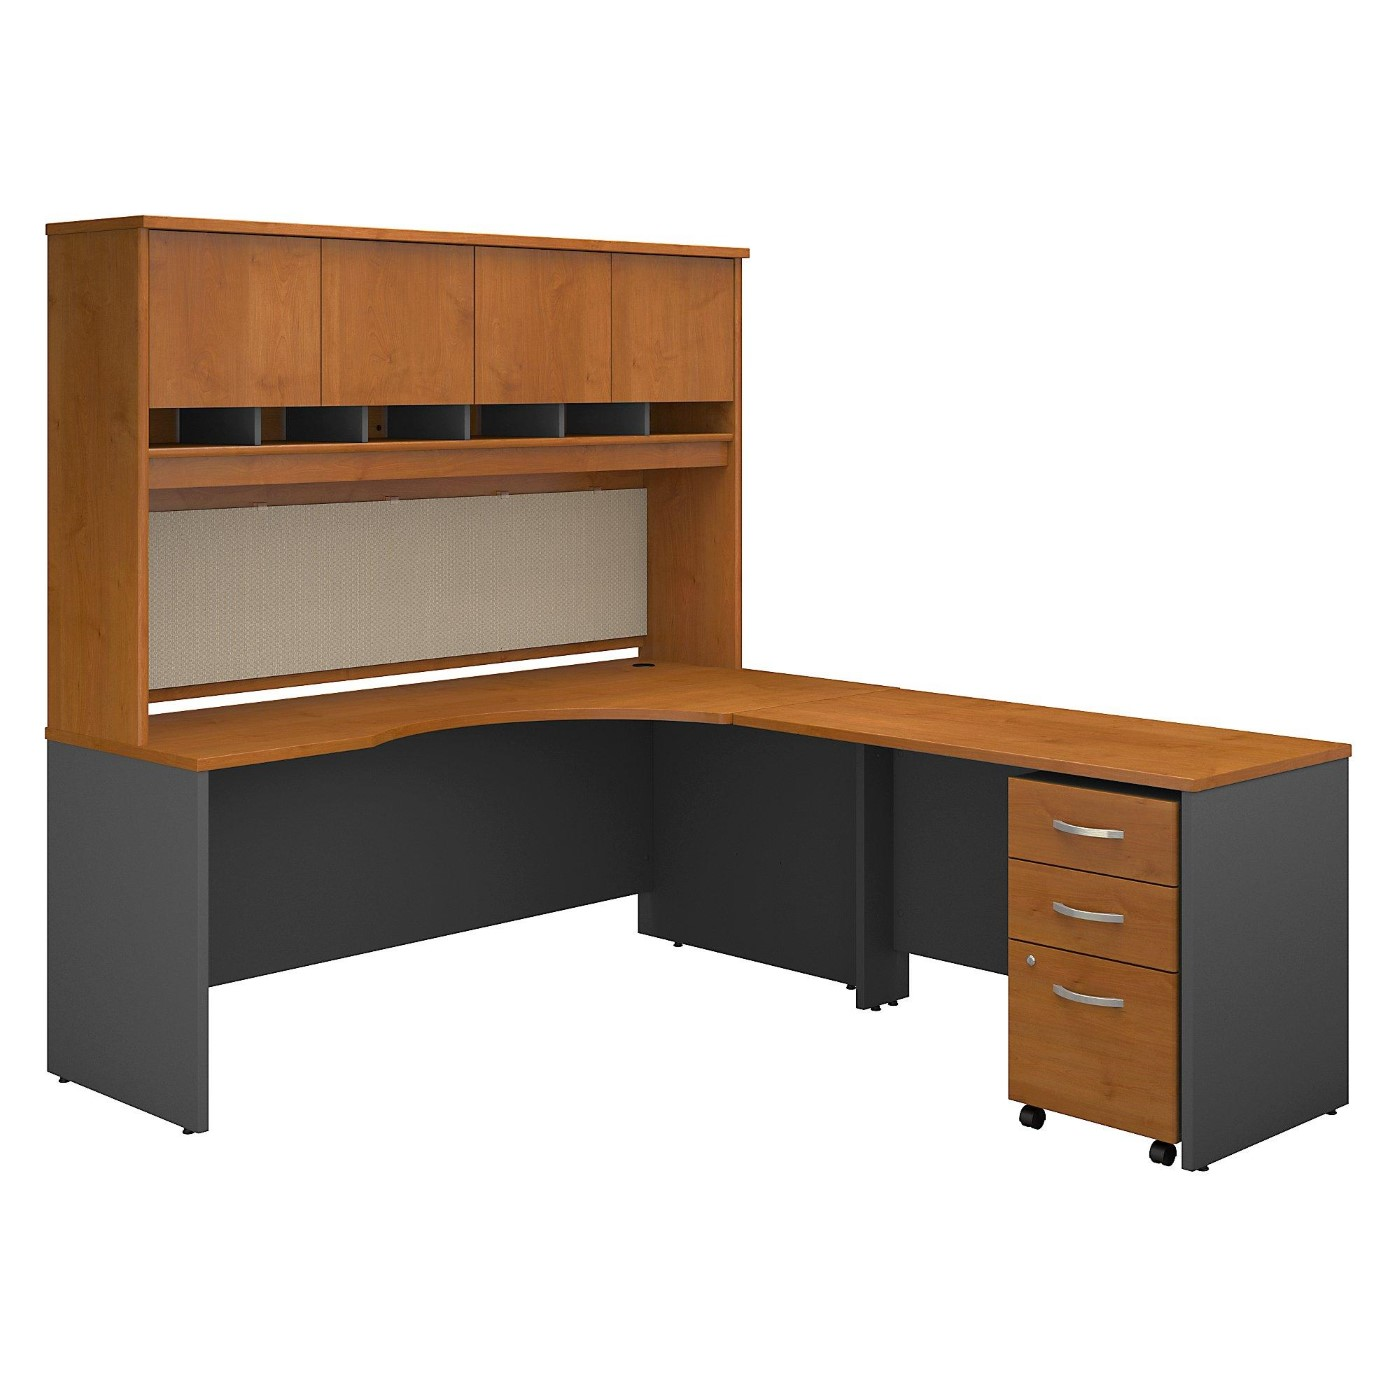 <font color=#c60><b>BUSH BUSINESS FURNITURE SERIES C 72W LEFT HANDED CORNER DESK WITH HUTCH AND MOBILE FILE CABINET. FREE SHIPPING</font></b>